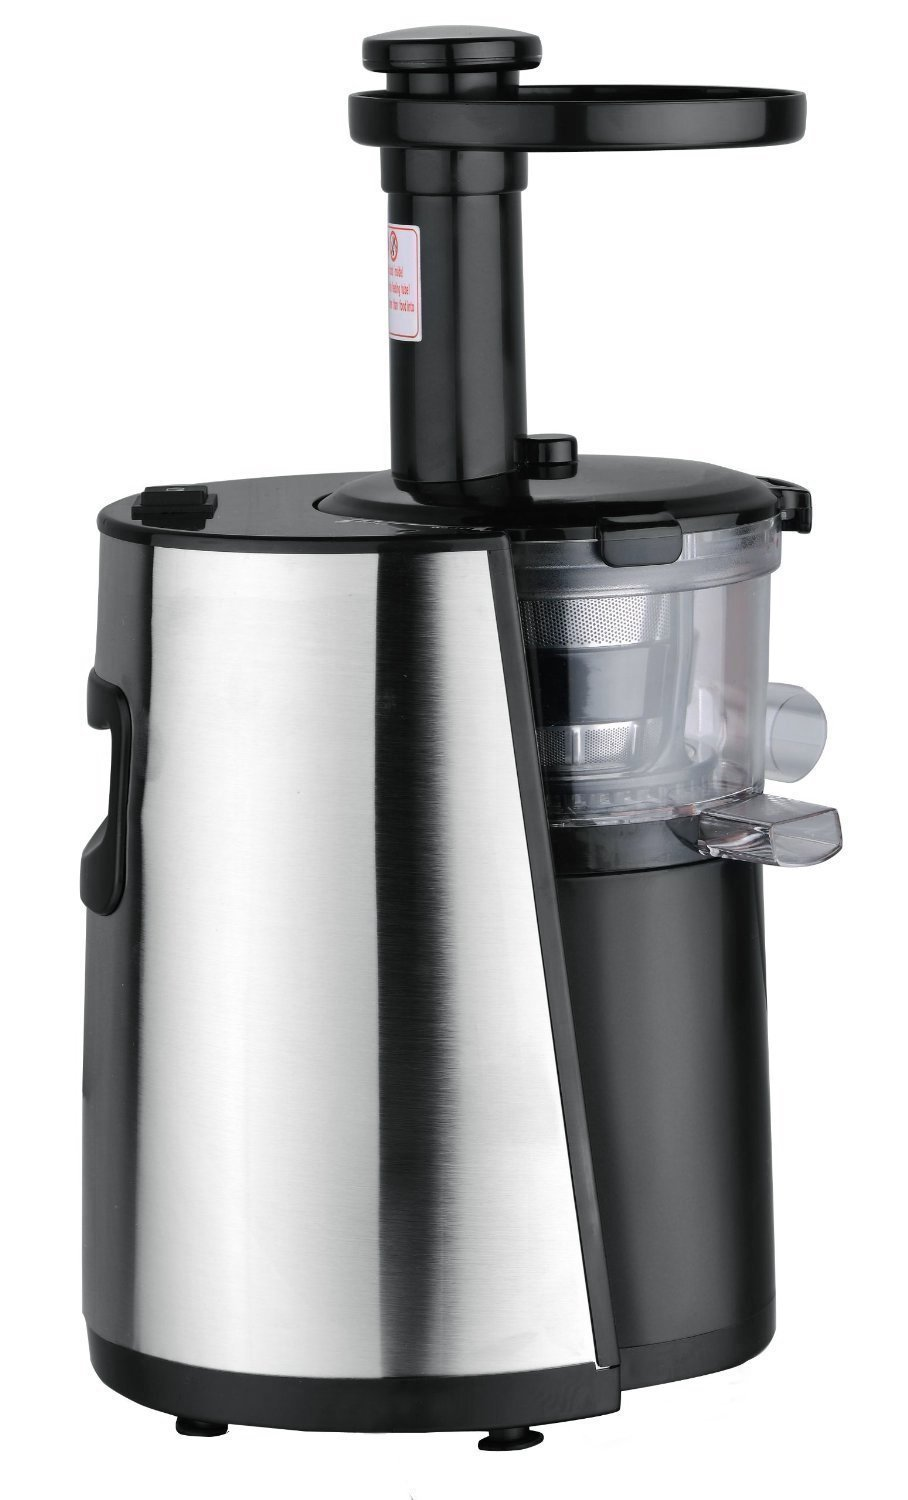 Slowstar Masticating Juicer : Top 10 best masticating juicers reviews